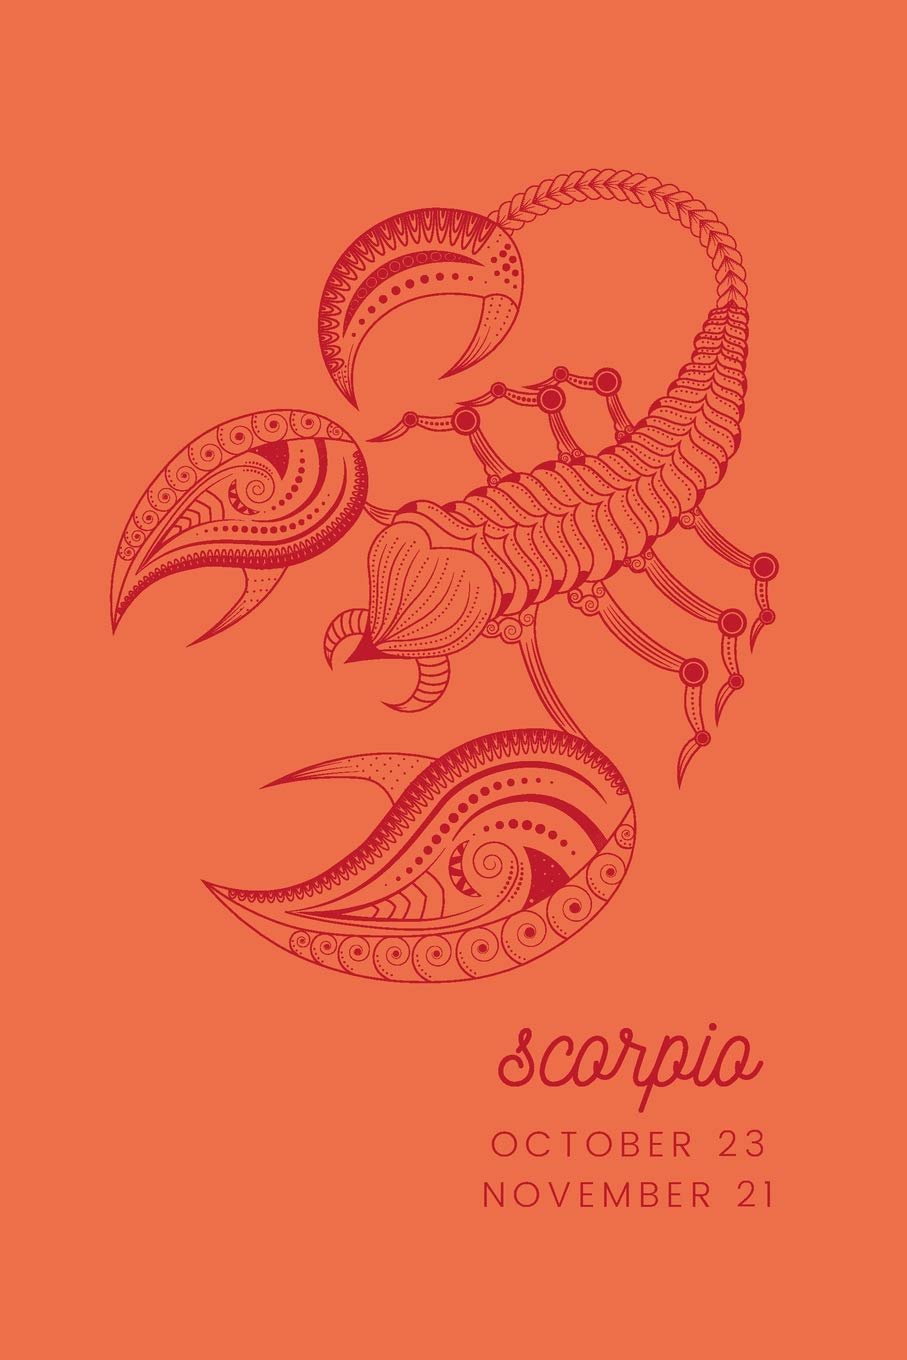 Amazon com: Scorpio - October 23 November 21: Zodiac Sign Journal